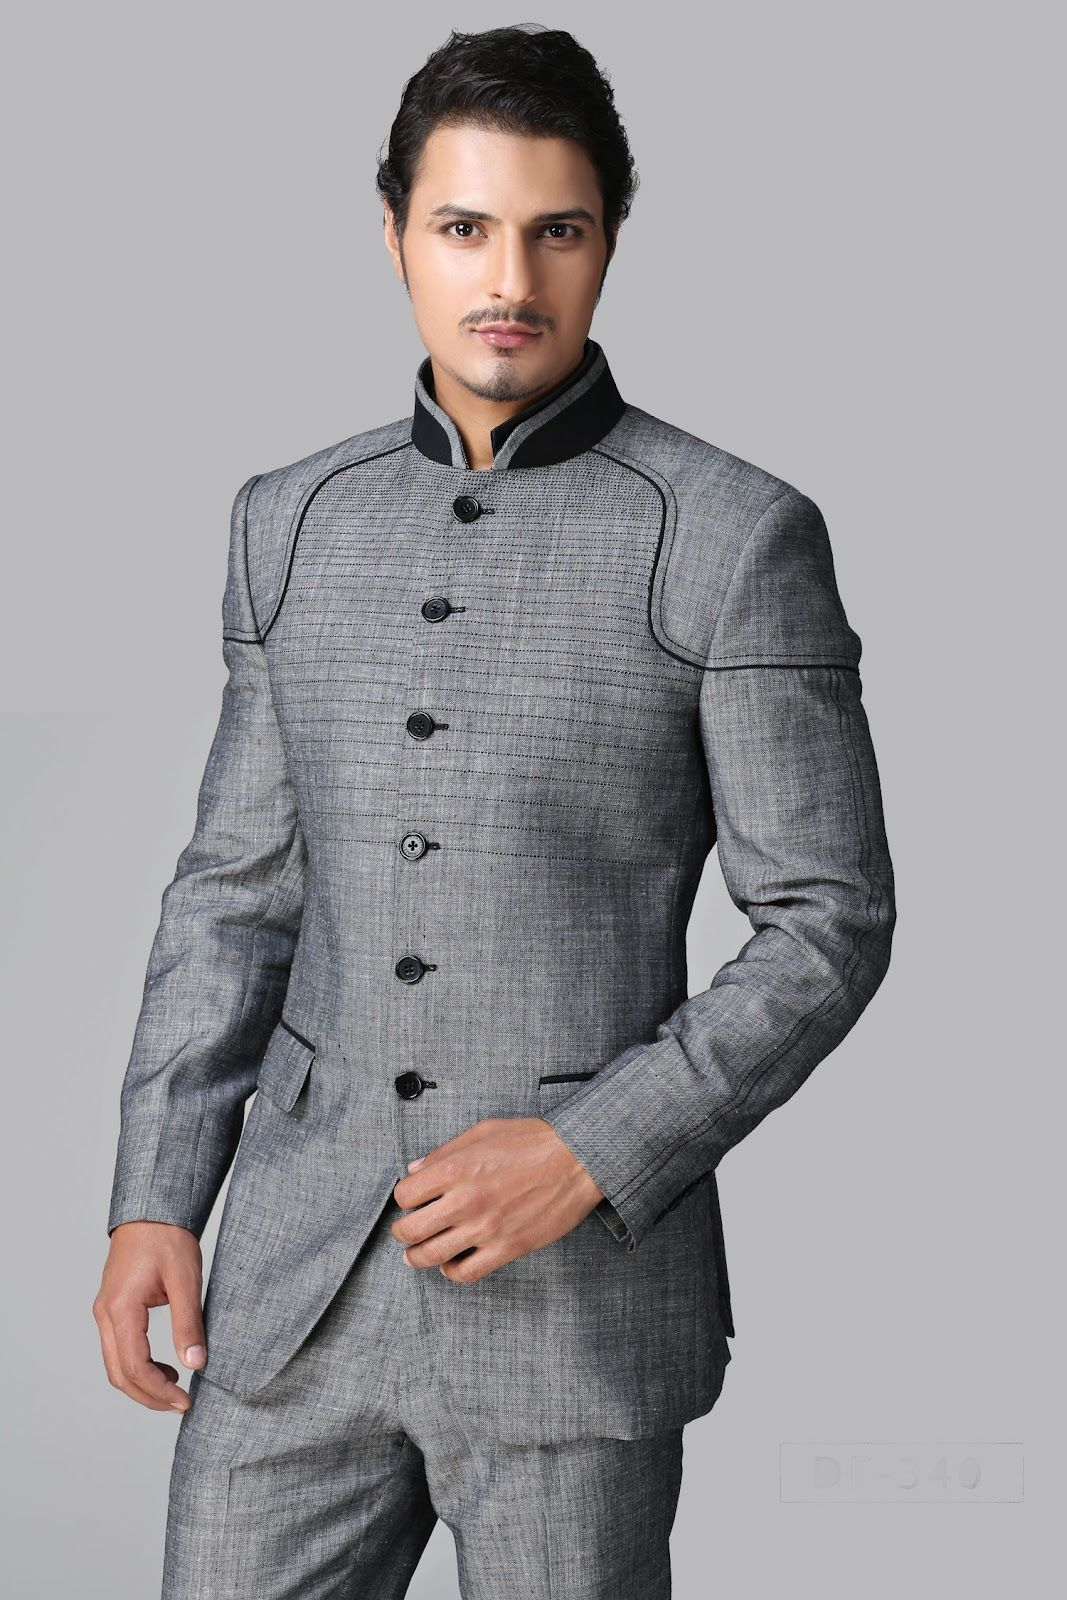 3 Piece Suits are famous for ceremonial Dresses,Official Wear and ...